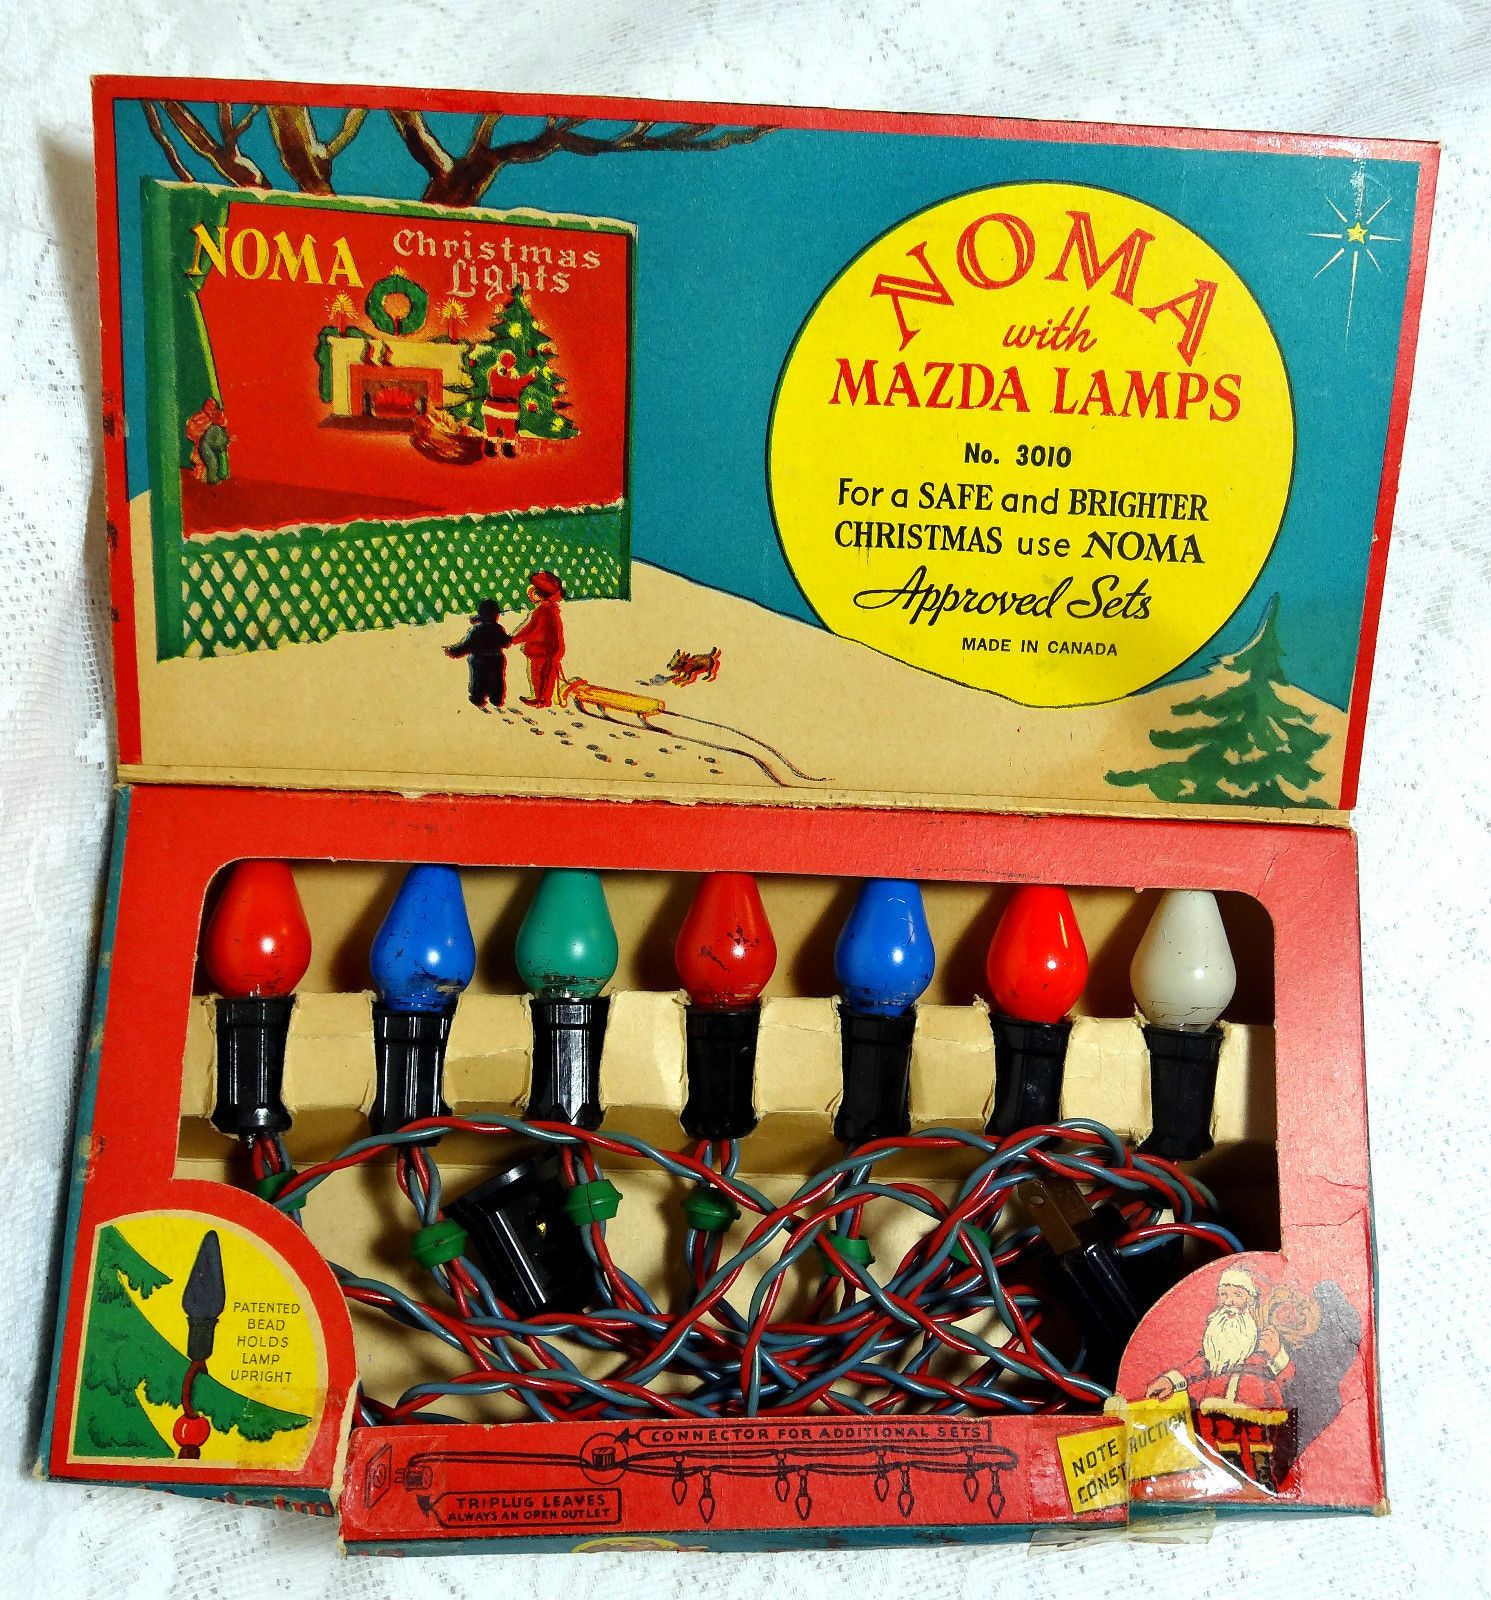 Vintage Noma Christmas Lights Mazda Lamps Working 1936 from eBay ...